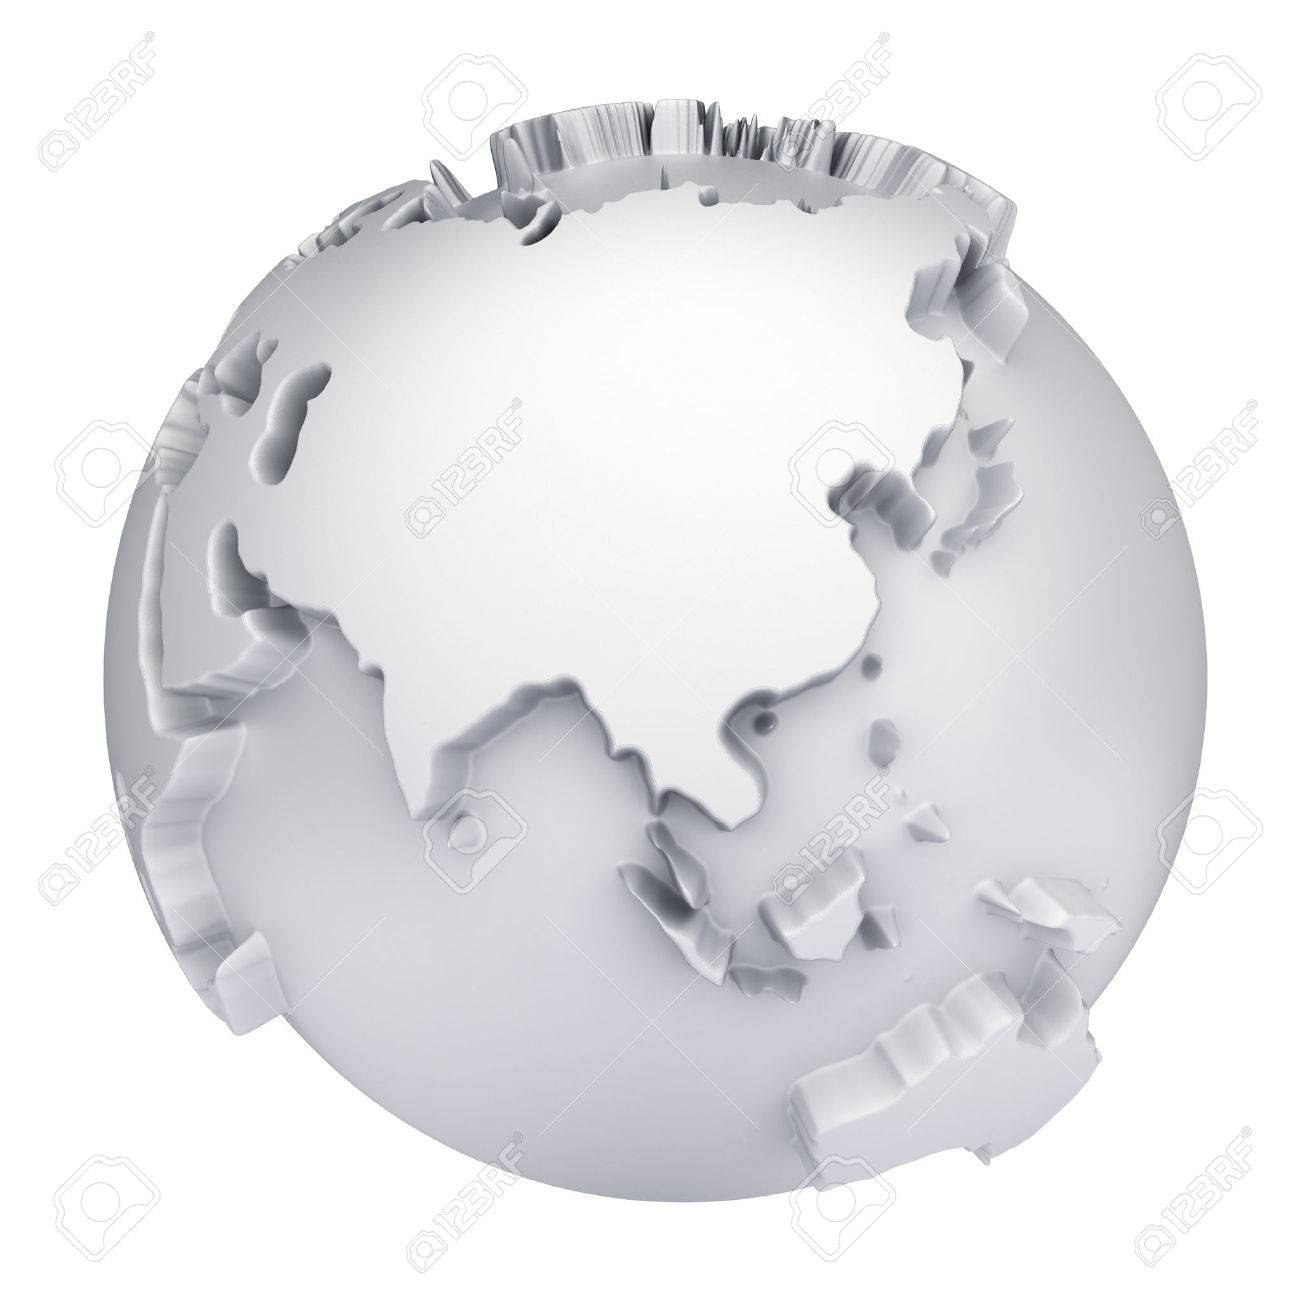 Earth world map asia and australia on a planet globe 3d concept earth world map asia and australia on a planet globe 3d concept illustration stock gumiabroncs Images